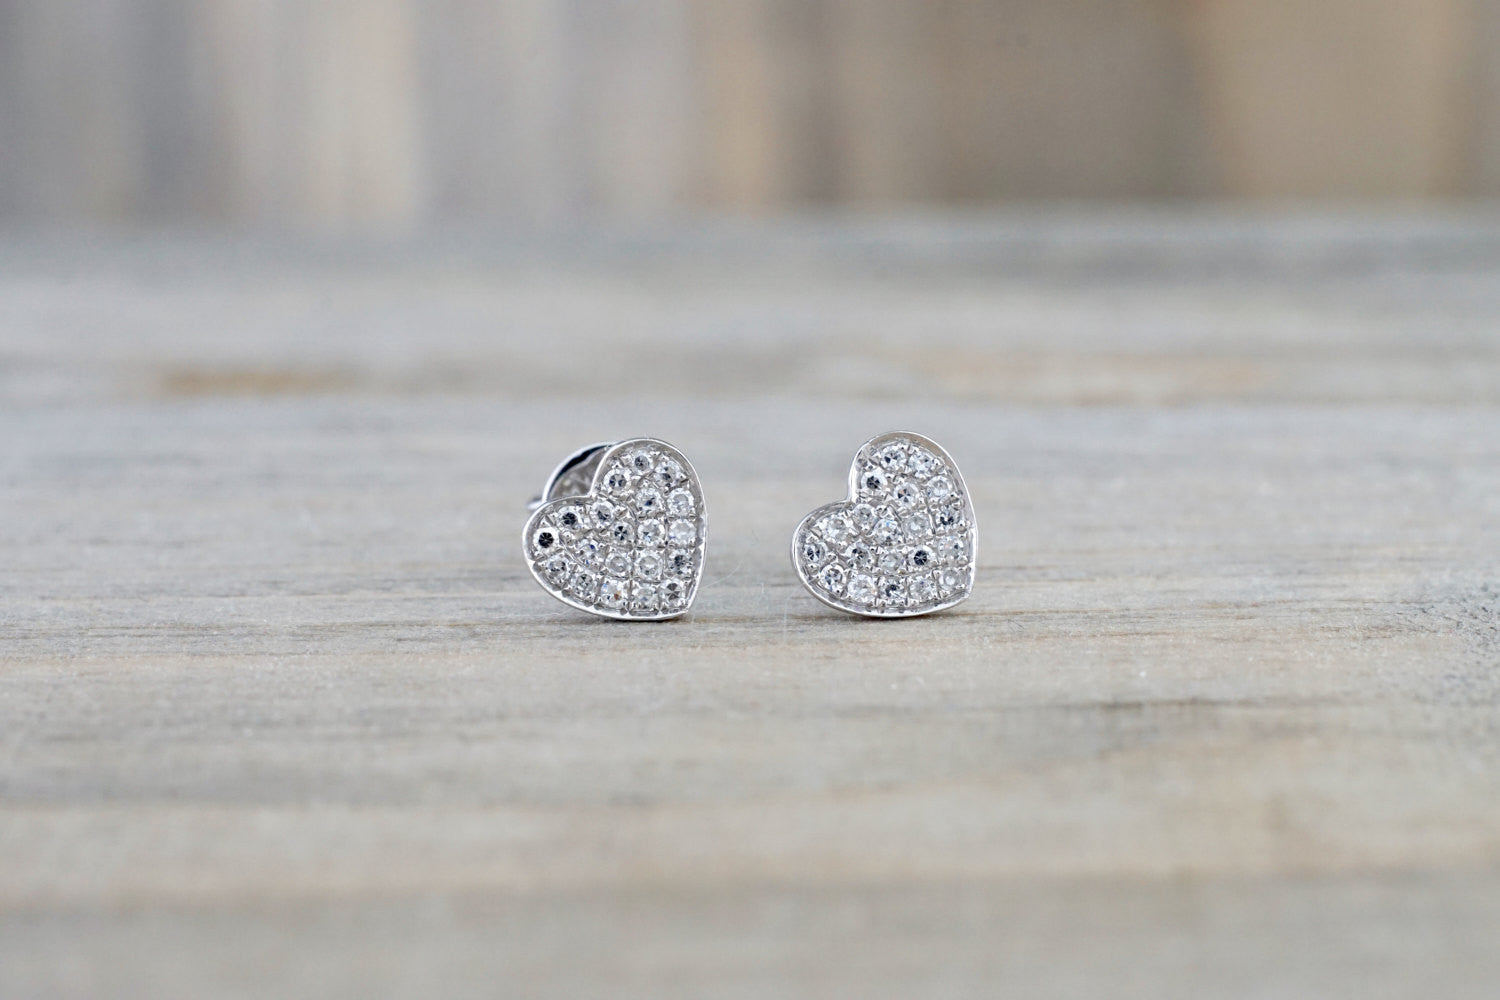 HEART 14k White Gold Micro Pave Stud Earring Studs 3d Point